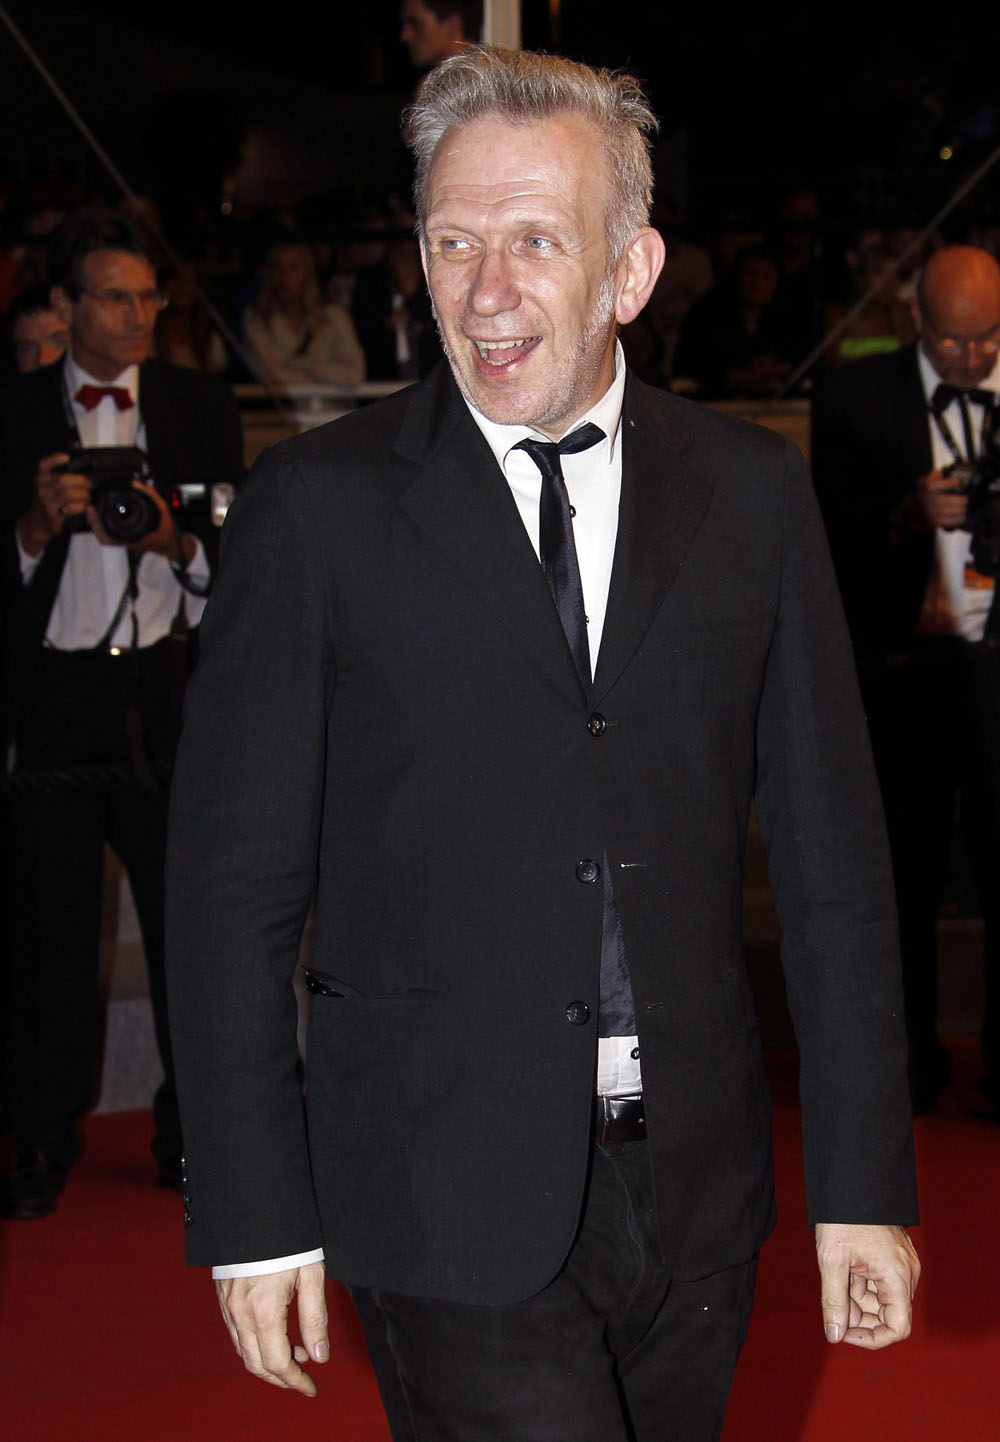 Jean Paul Gaultier sul red carpet per <em>The Paperboy</em> di Lee Daniels.